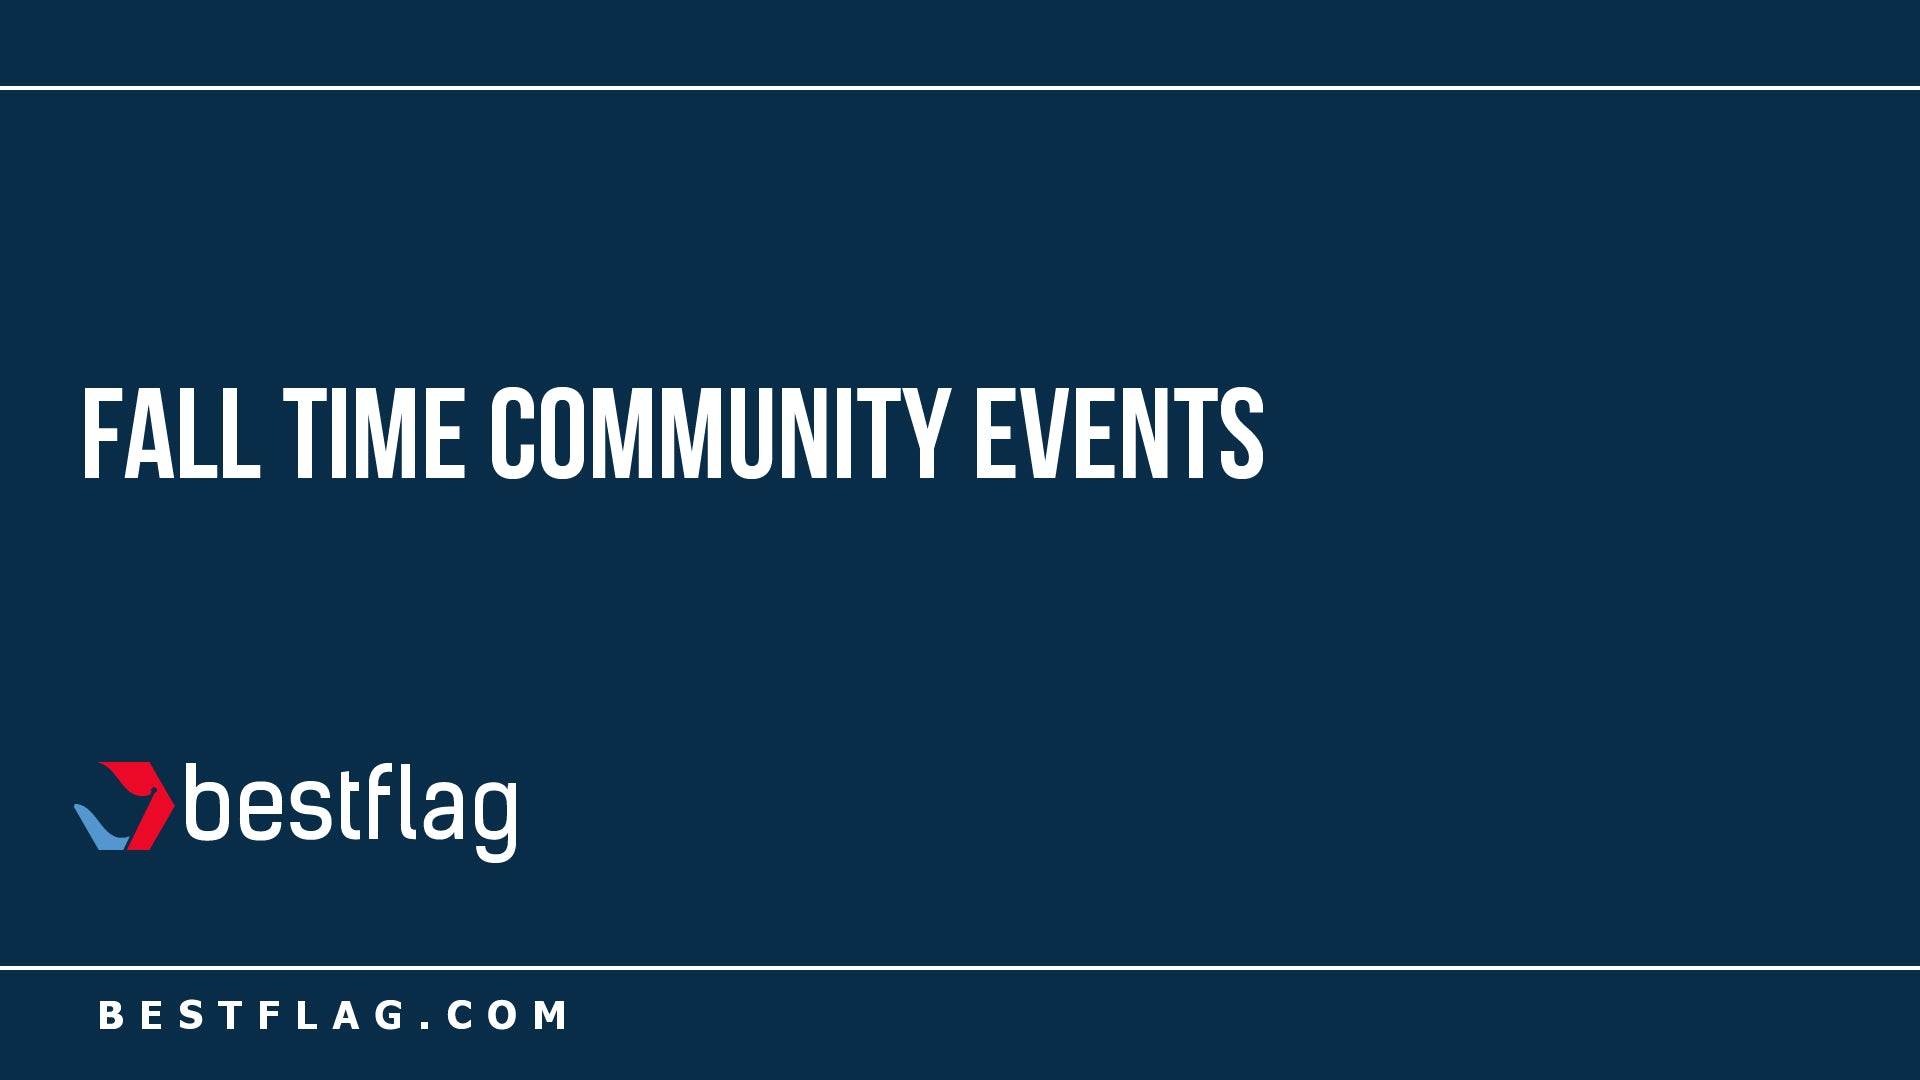 Fall Time Community Events